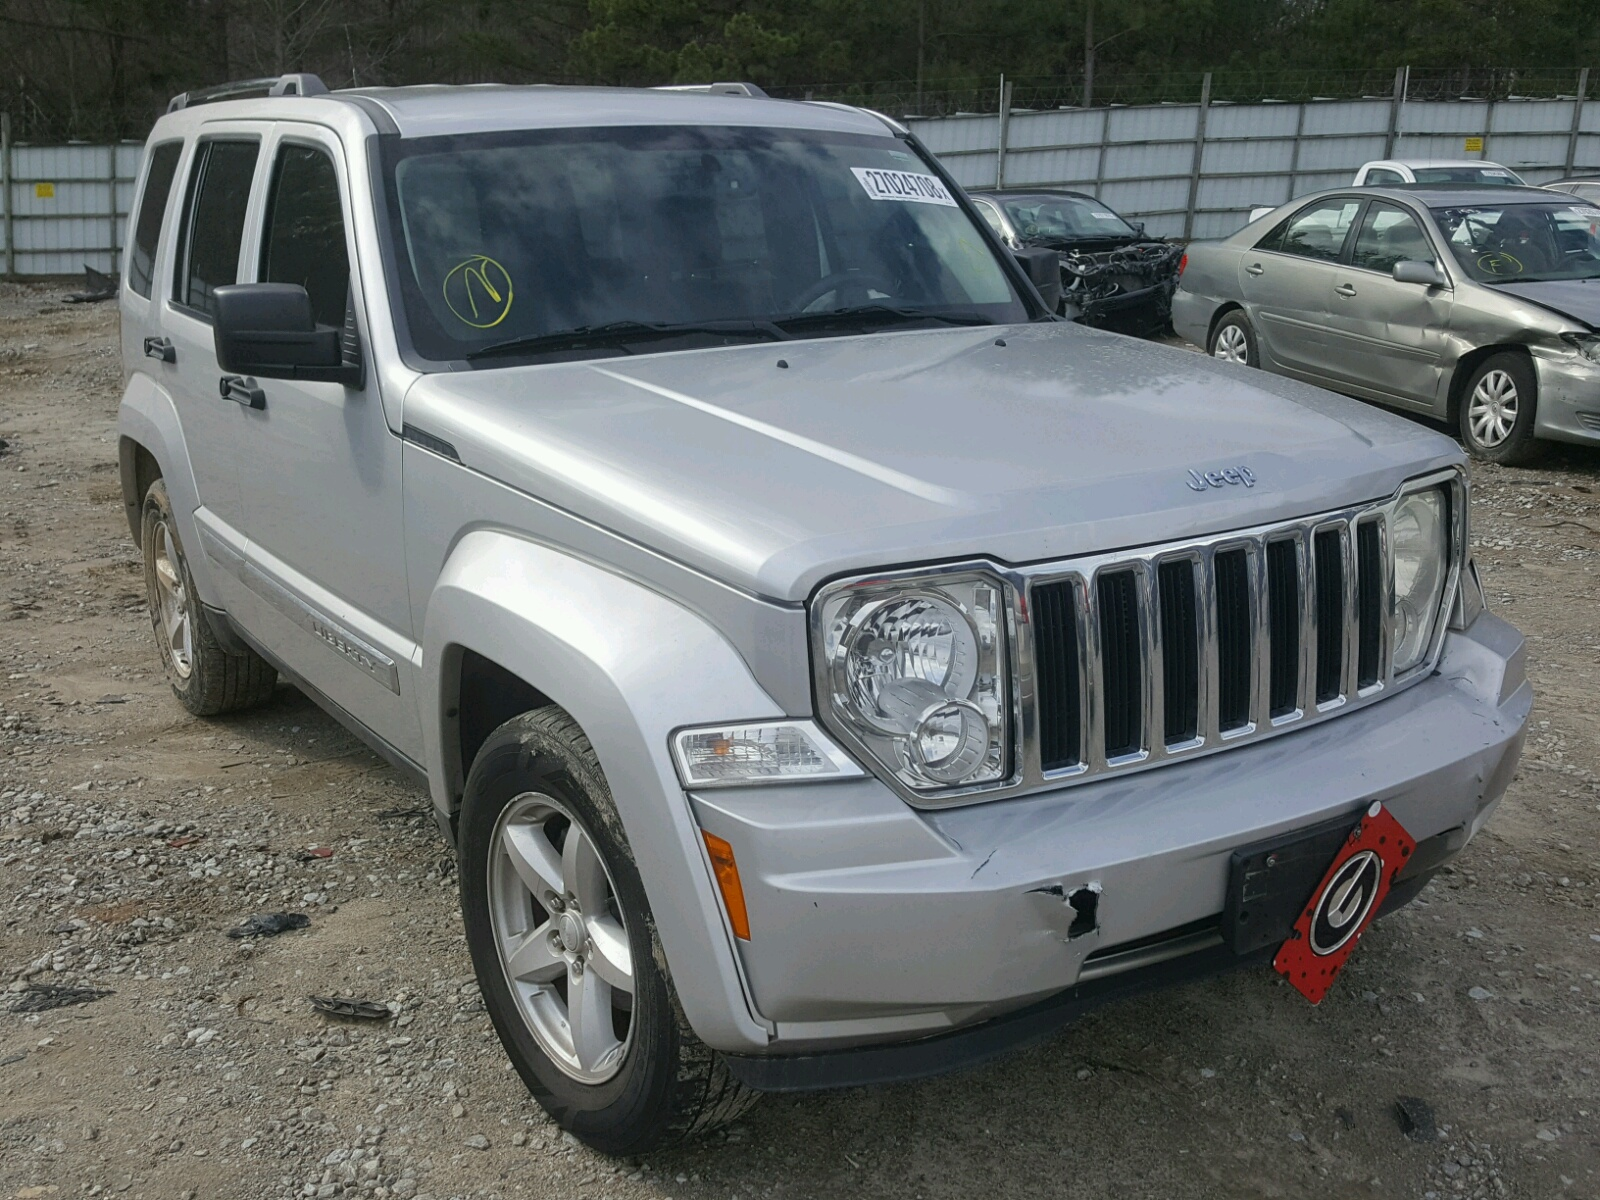 Auto Auction Ended on VIN 1J4PP5GK2BW 2011 JEEP LIBERTY LI in